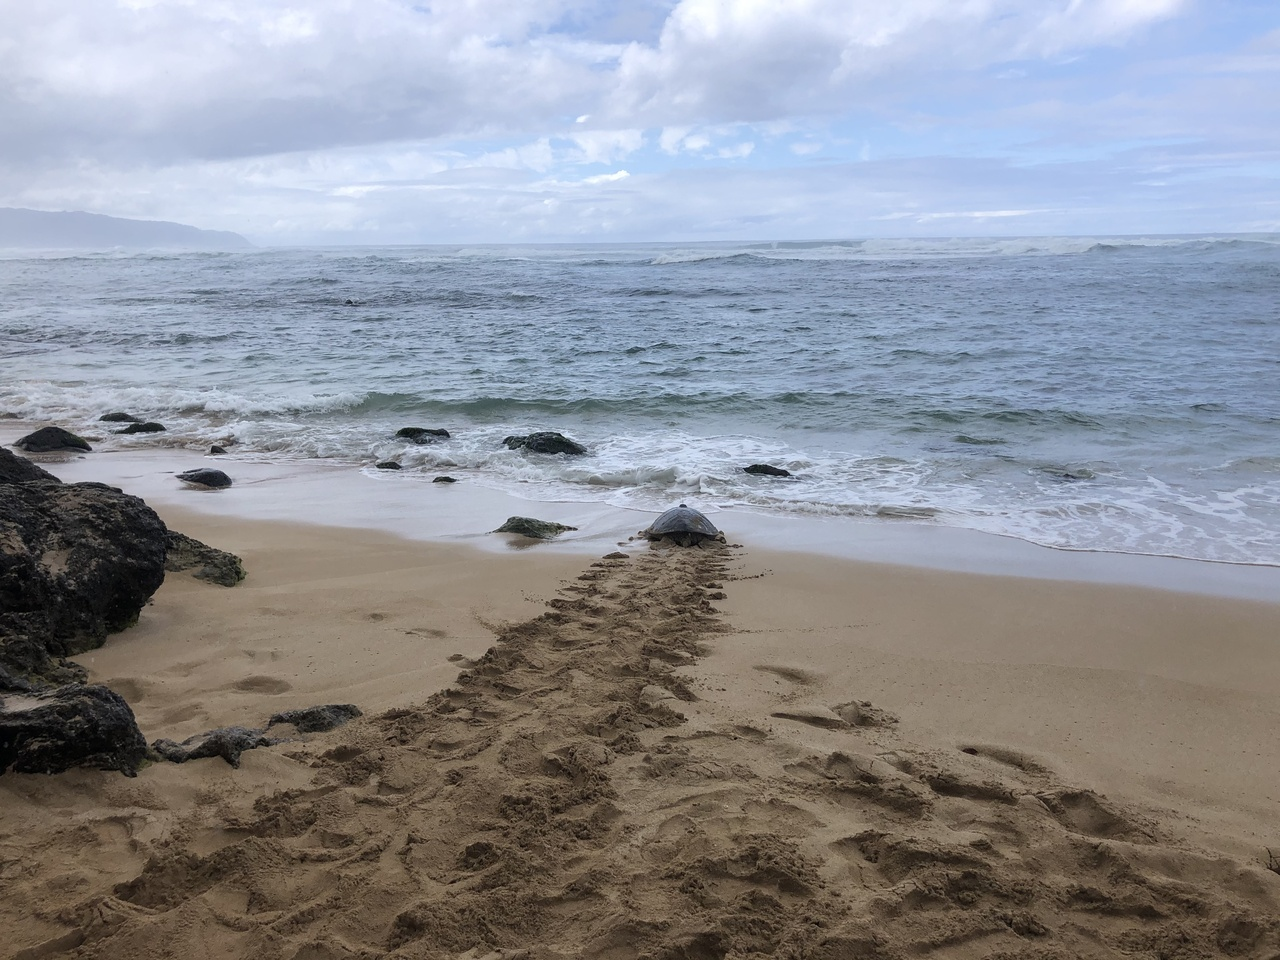 Turtle leaving tracks behind as it heads into the water.